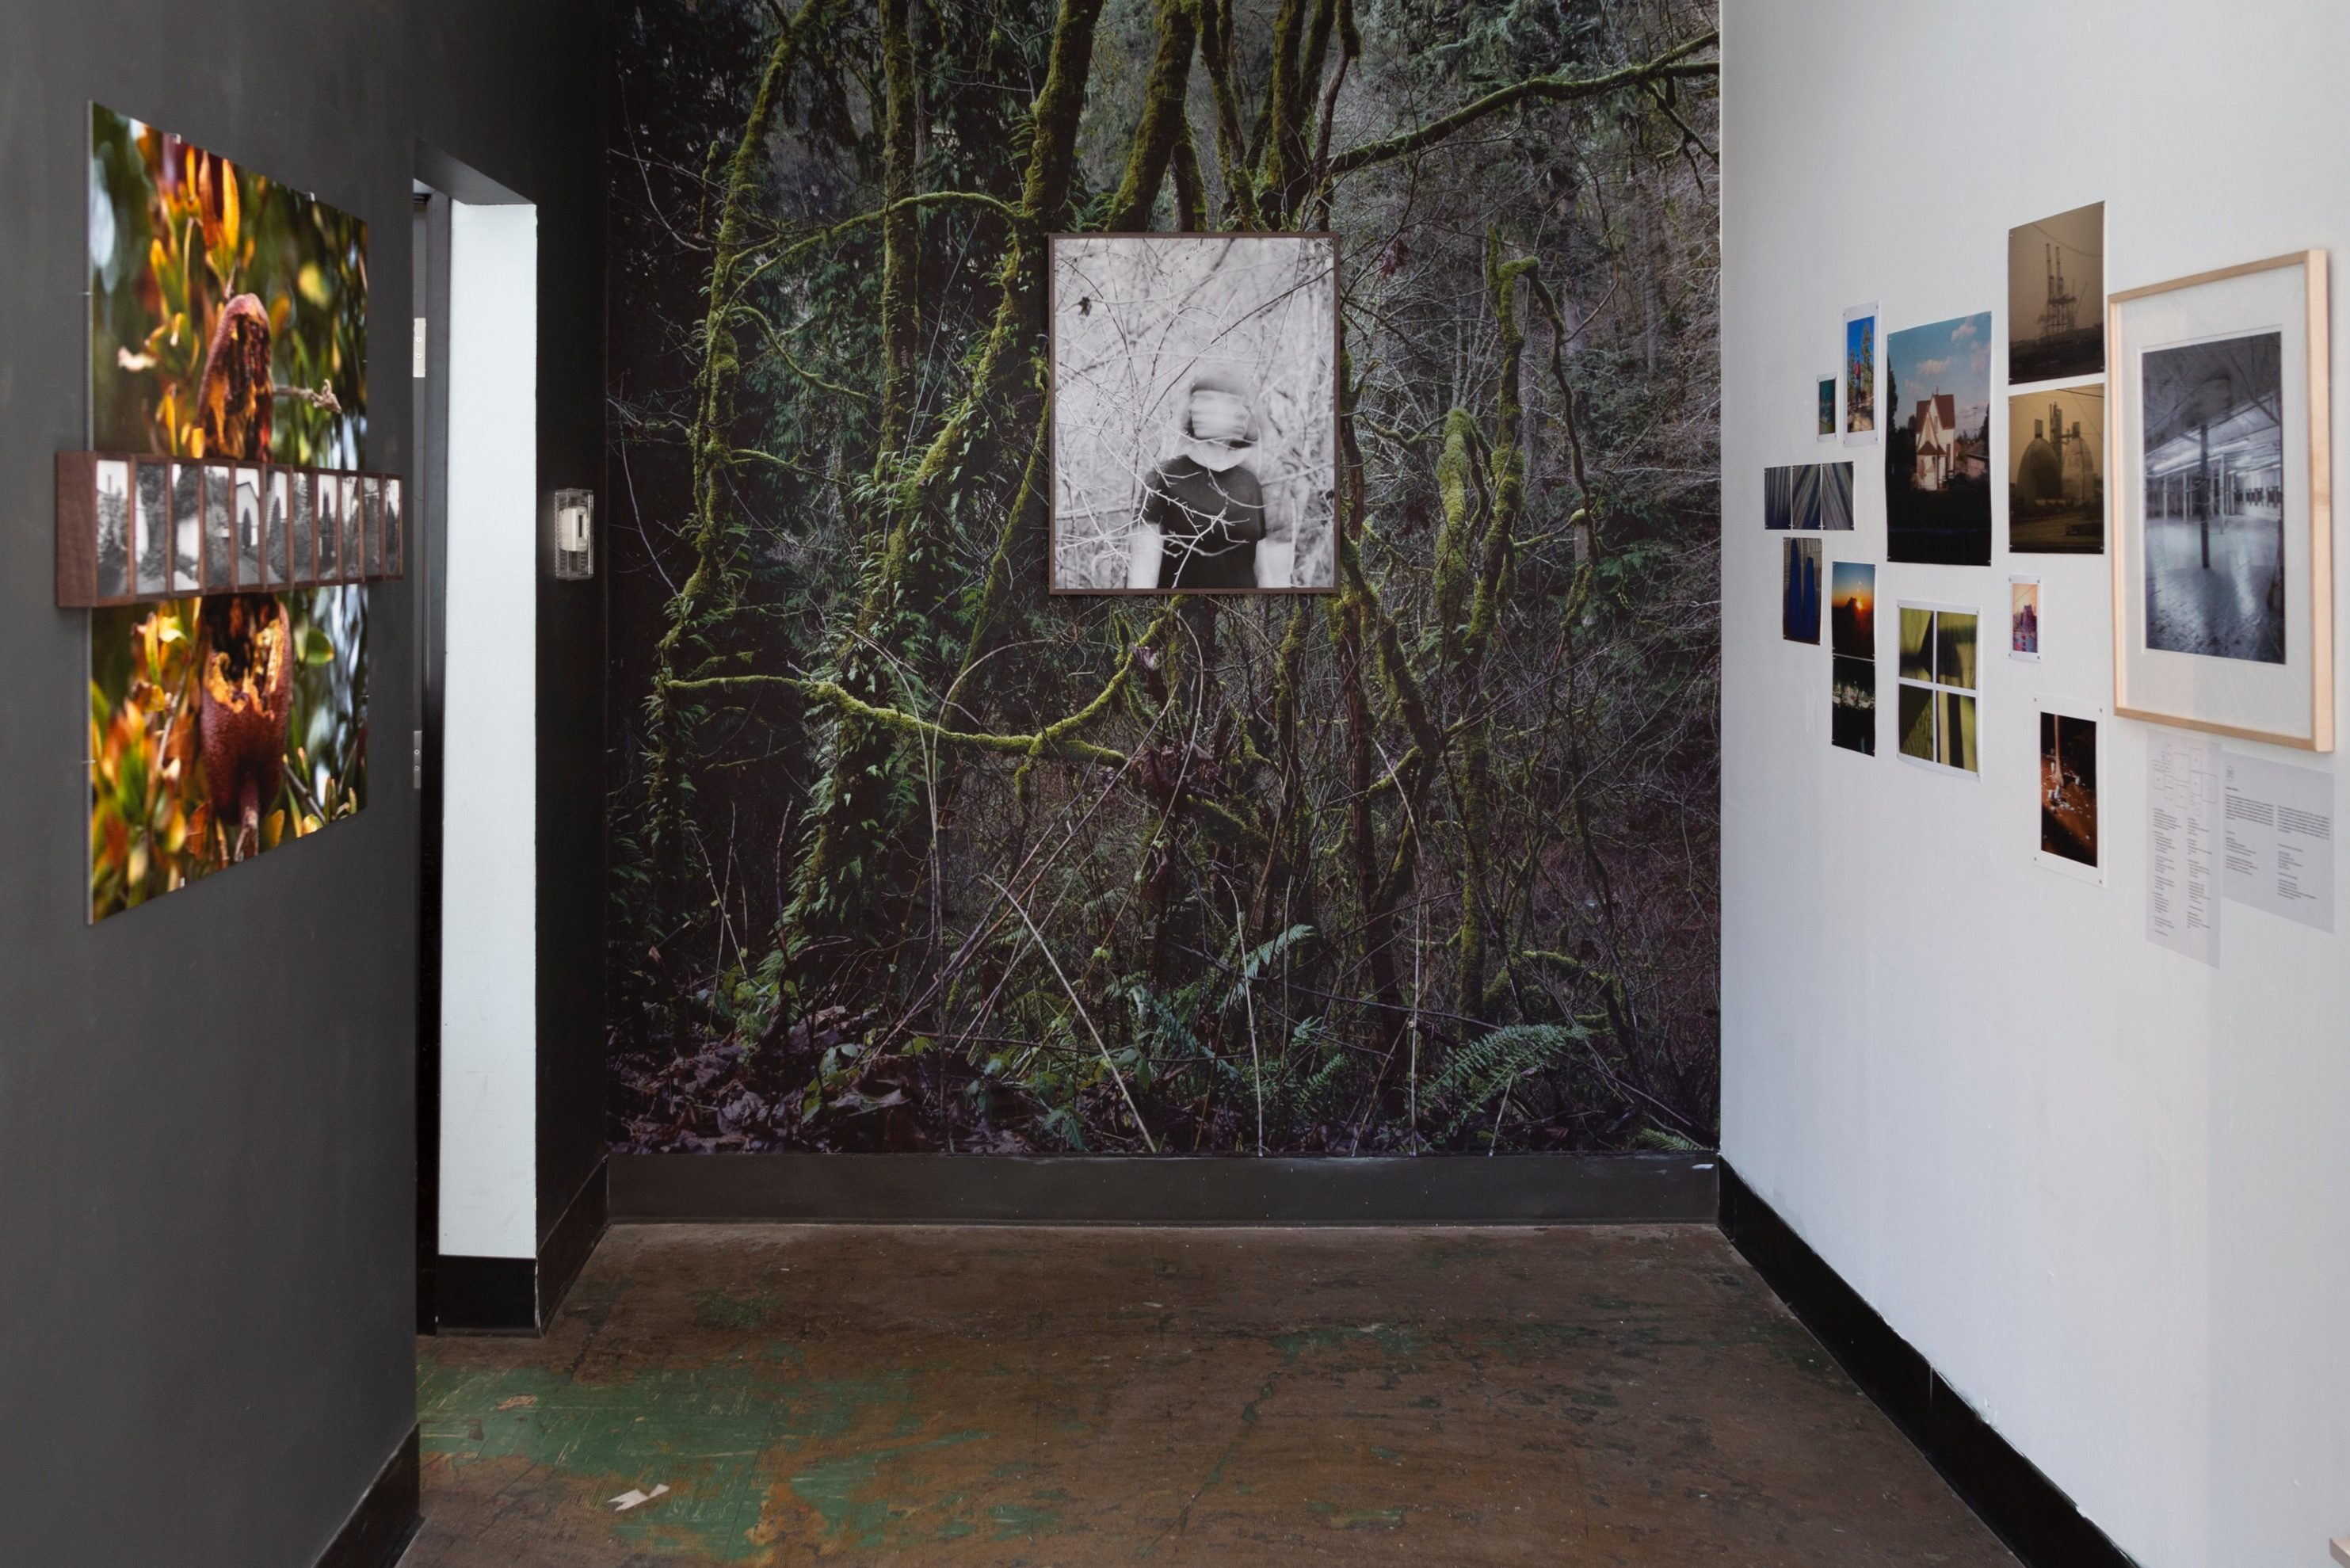 A room is dimly lit and features multiple pieces of art, including an arrangement of photographs on a white wall, and a blurred, black and white photograph of a woman on a wall, which features a forested backdrop.